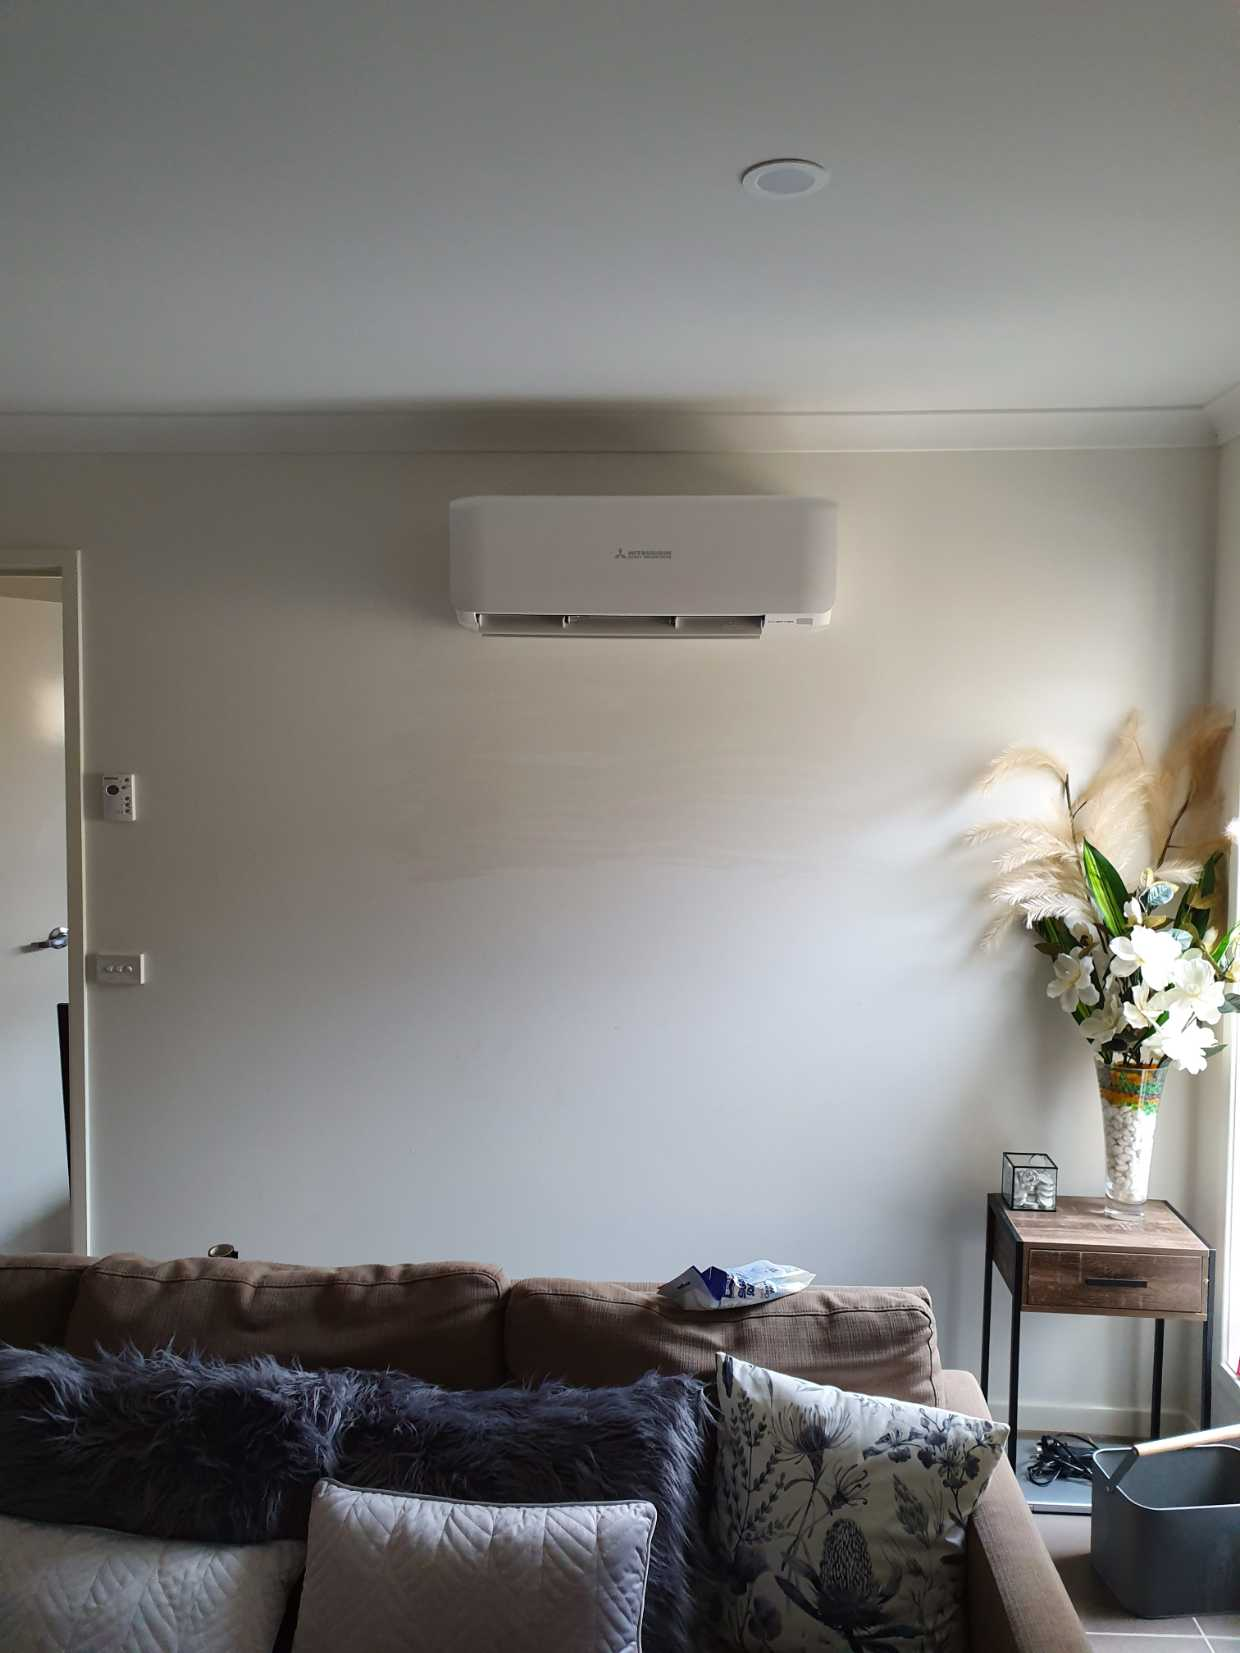 Nextgen Plumbing and air conditioning - Somerville, VIC 3912 - 0490 358 108 | ShowMeLocal.com